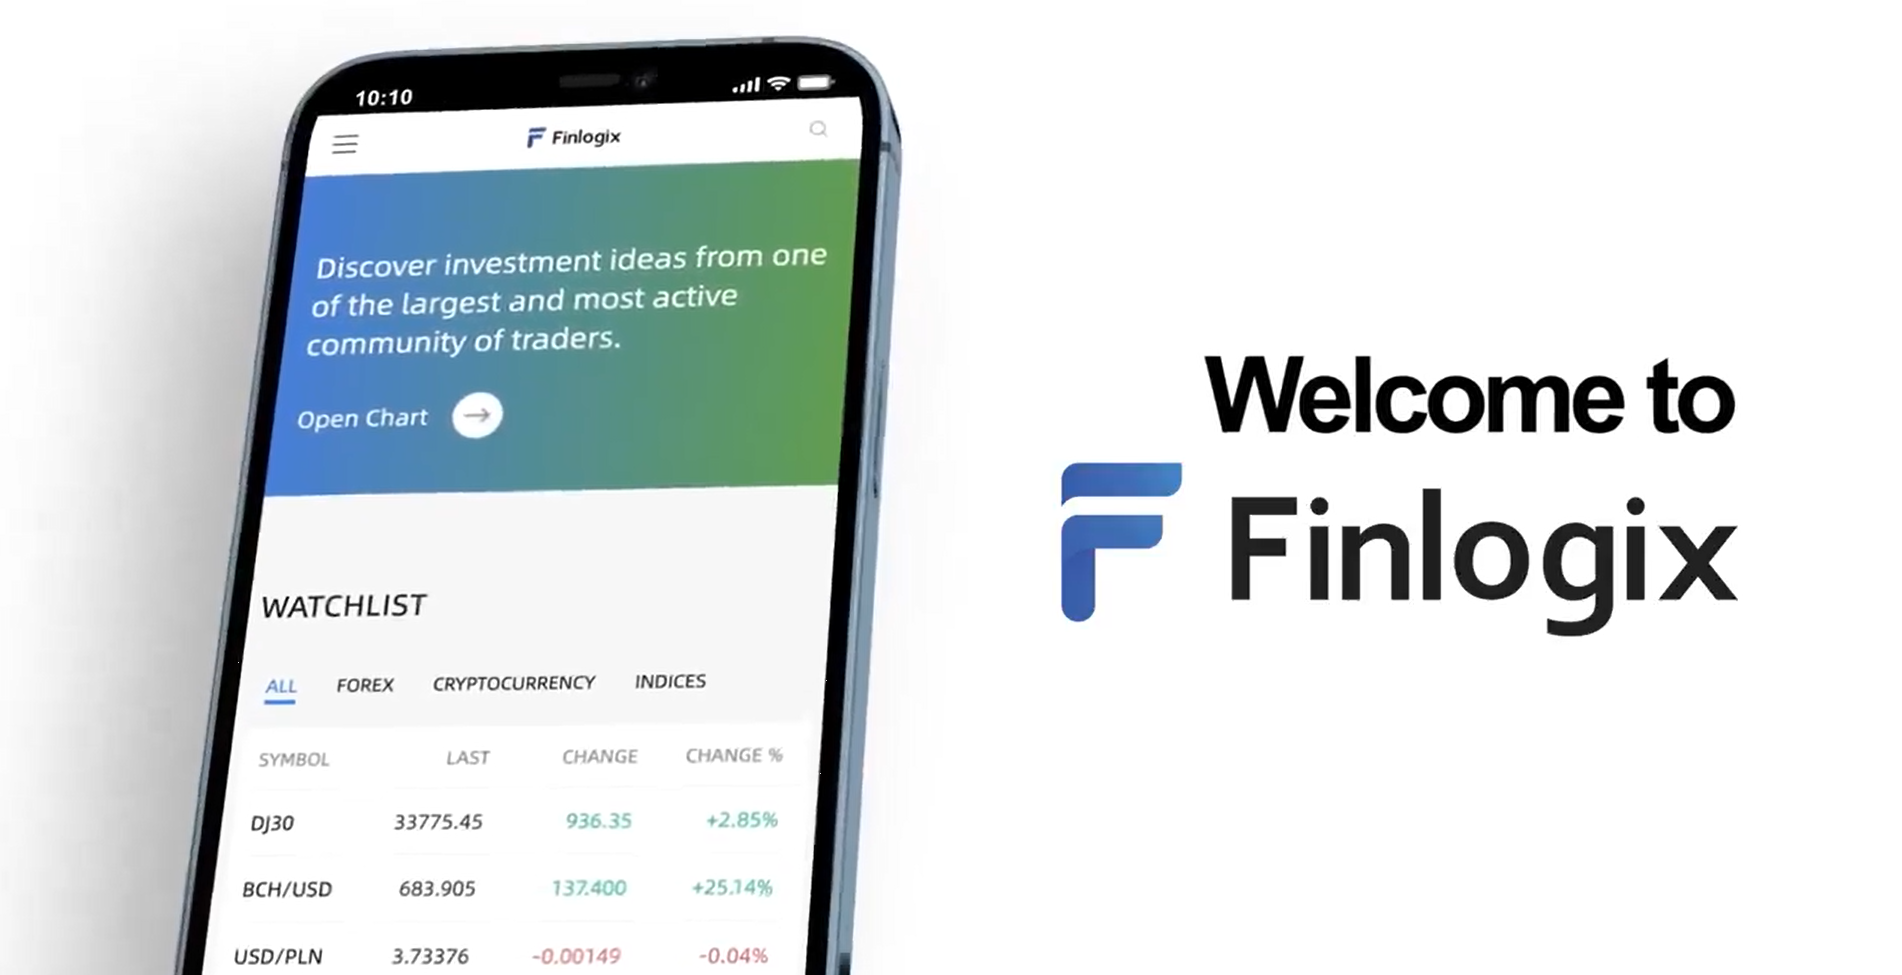 Finlogix, a community of active traders.